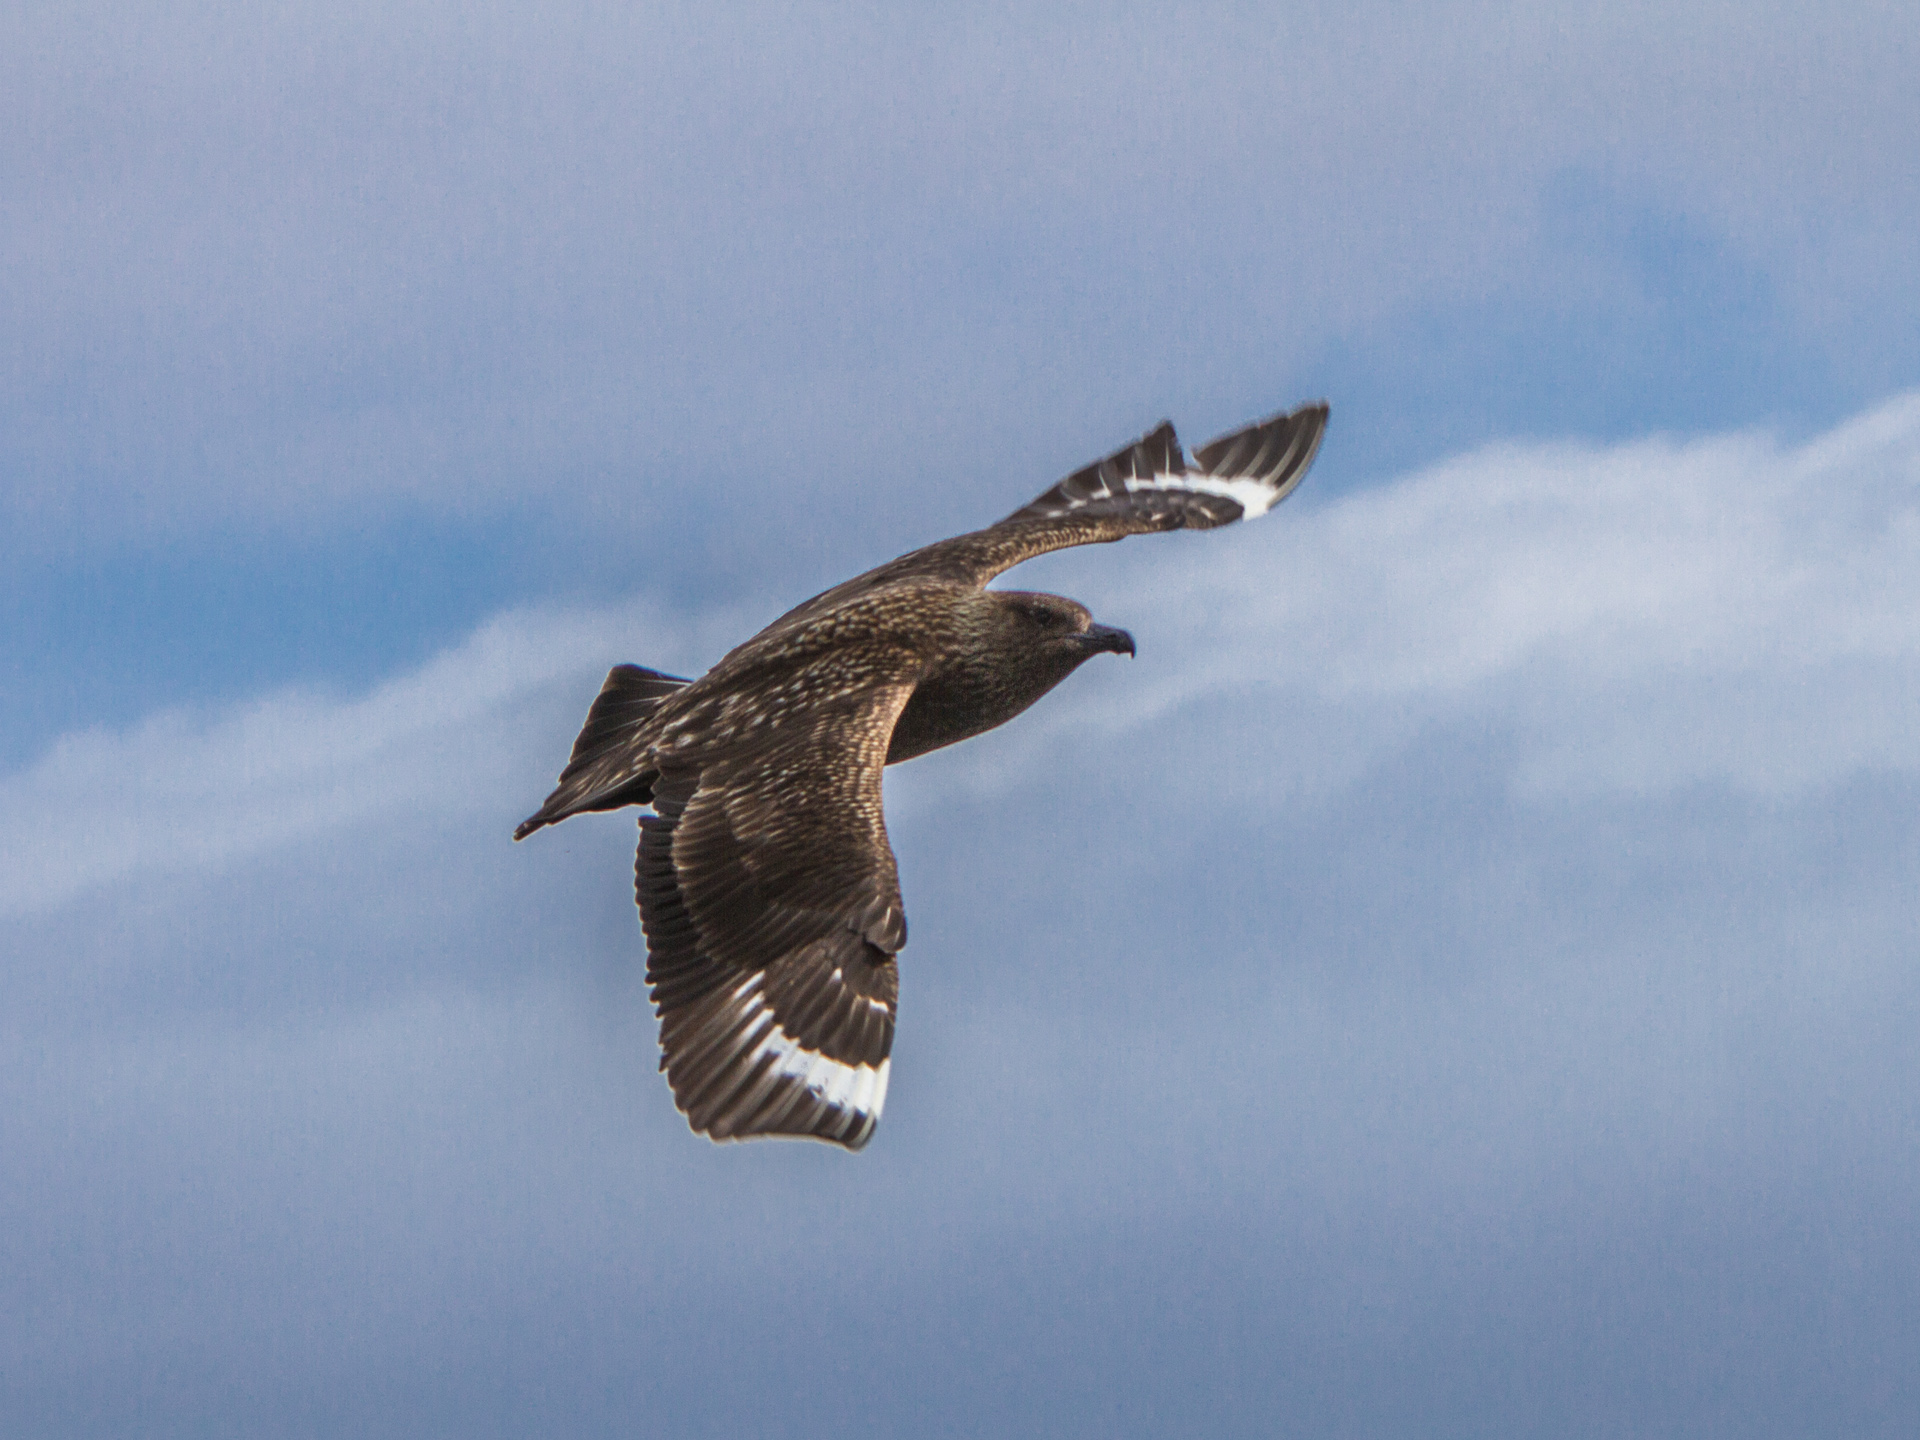 Great Skua, also known as a Bonxie, follows the boat